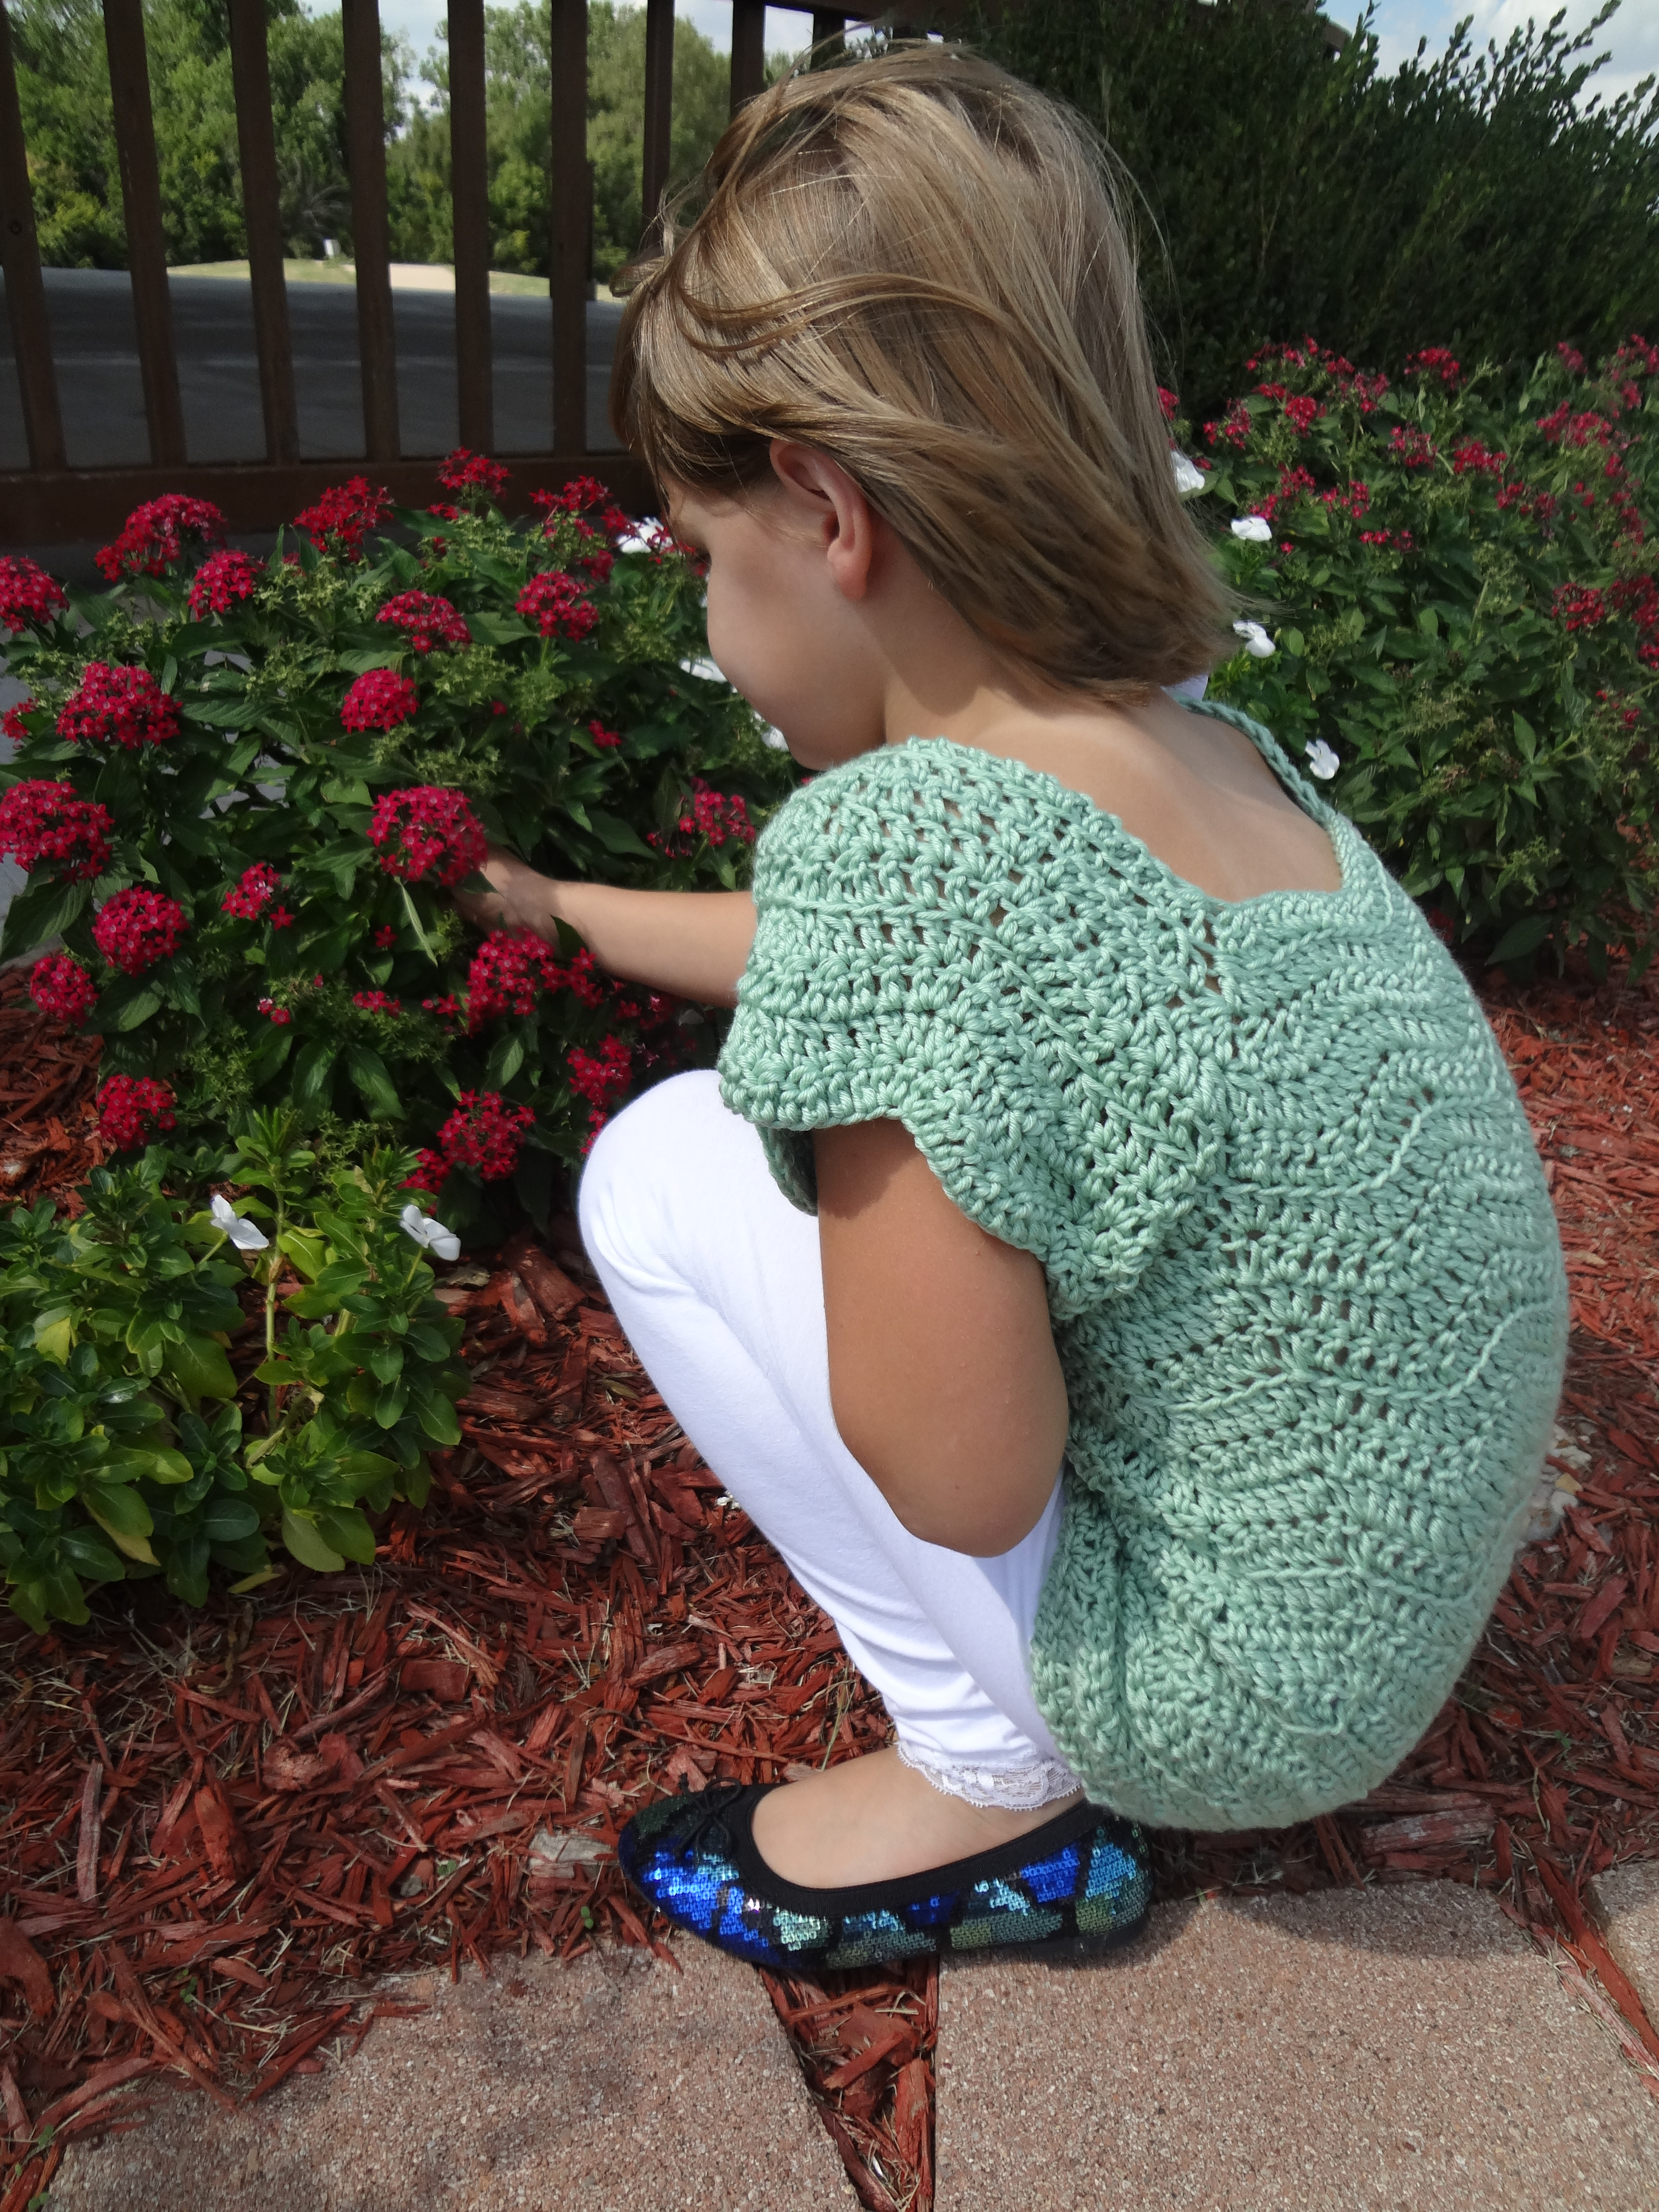 Girls wearing a crochet op and white pants with sequin shoes looking at flowers in a garden.